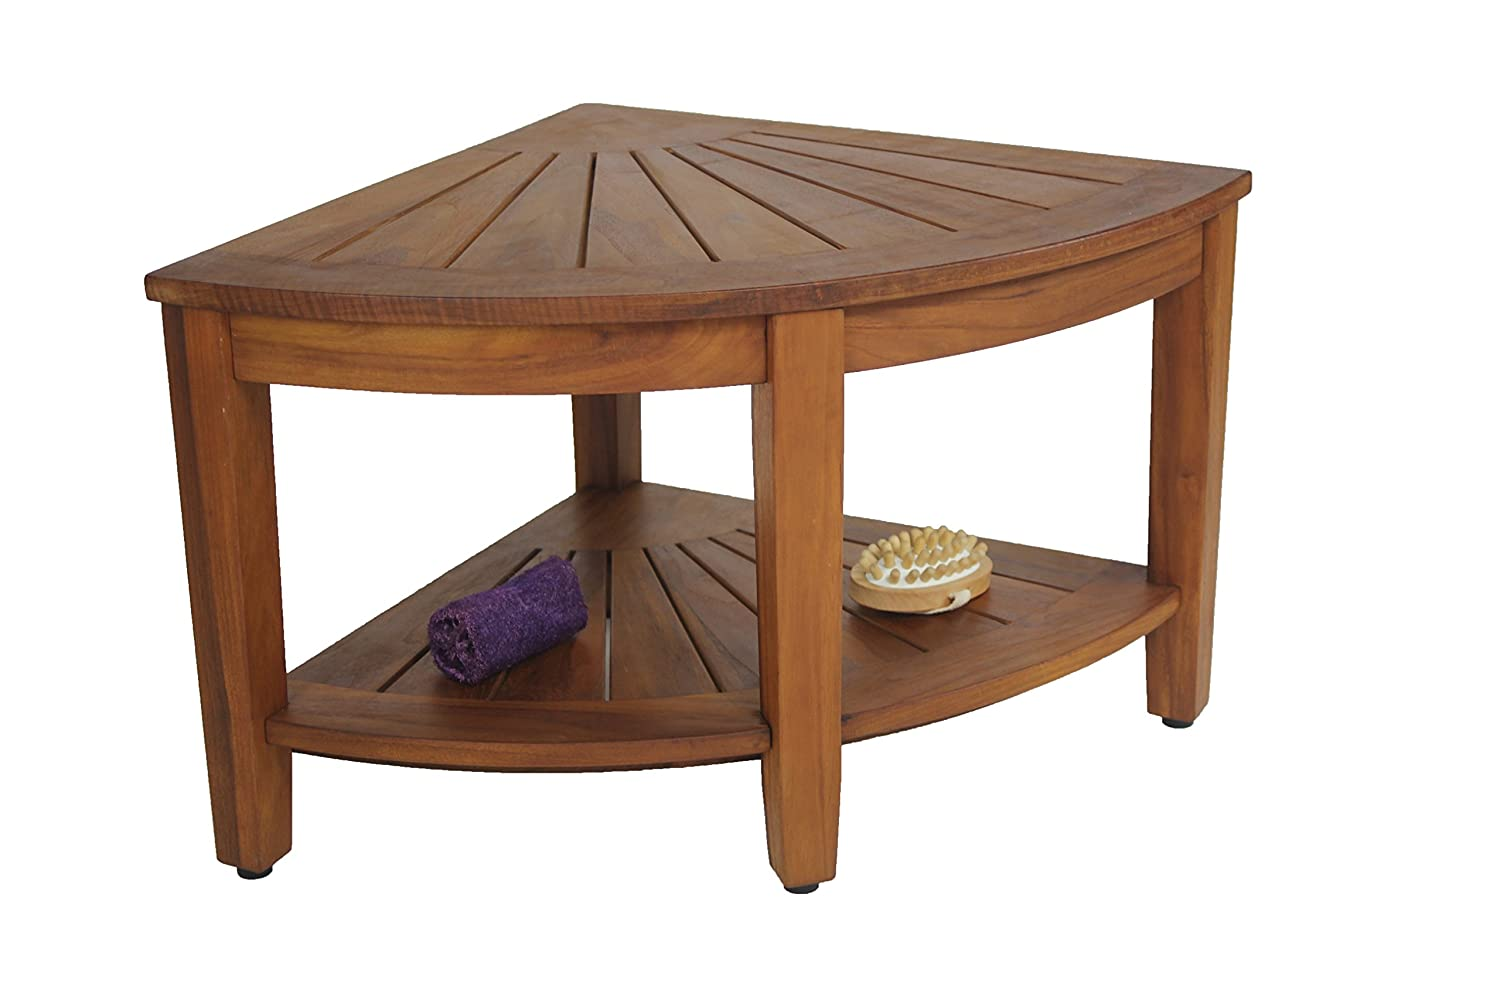 shower collection dining bench dp corner from amazon kitchen teak com stool the